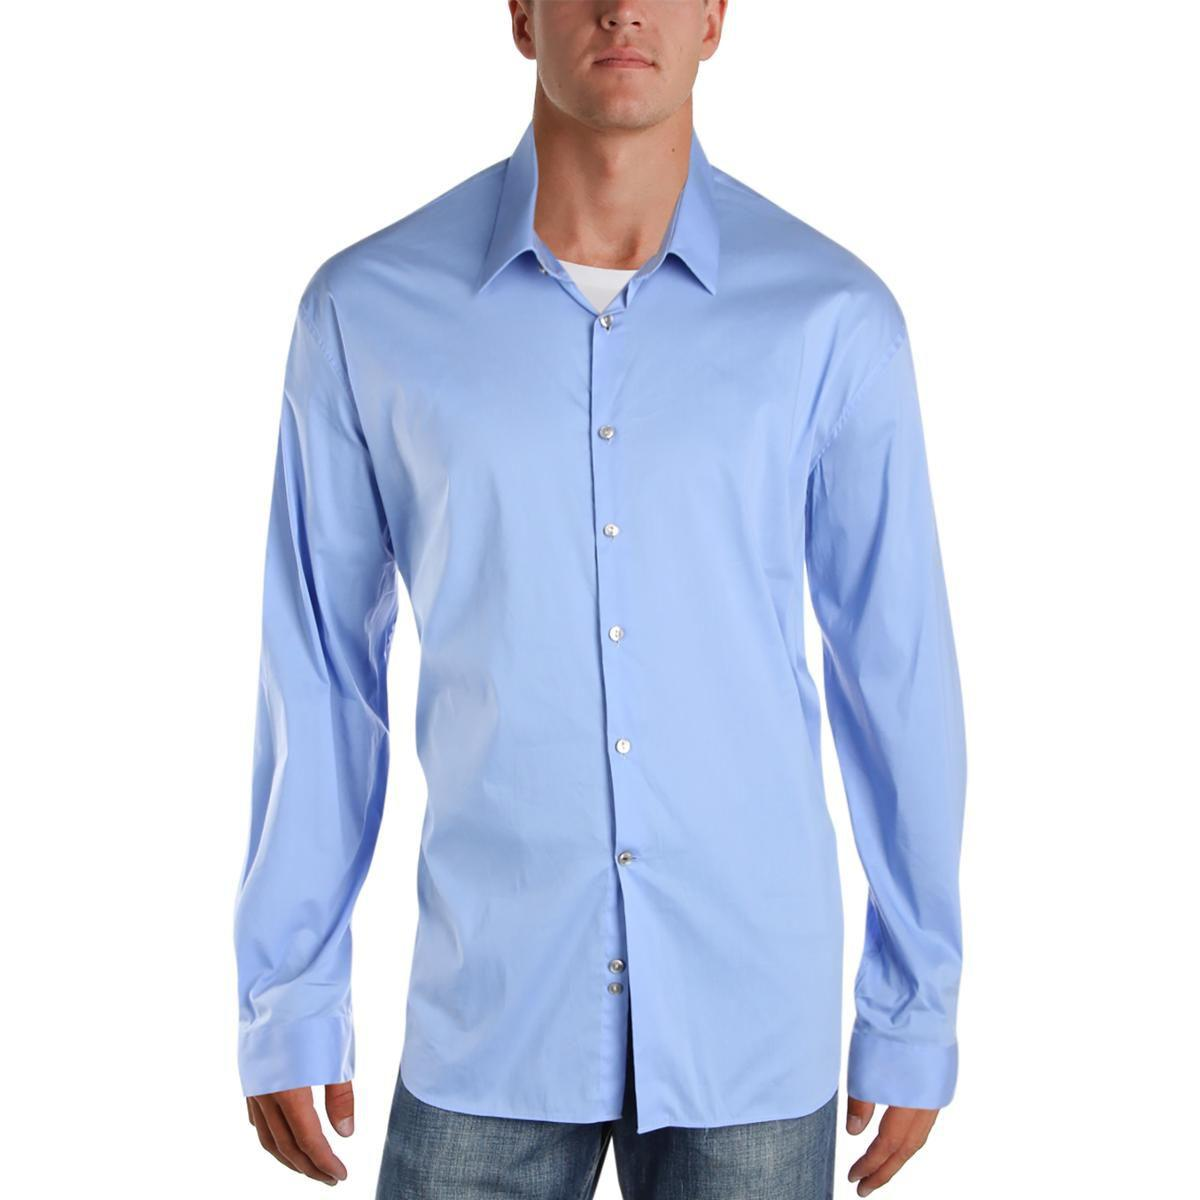 146ede7dfd8d Lyst - Calvin Klein Mens Extreme Slim Fit Solid Dress Shirt in Blue ...